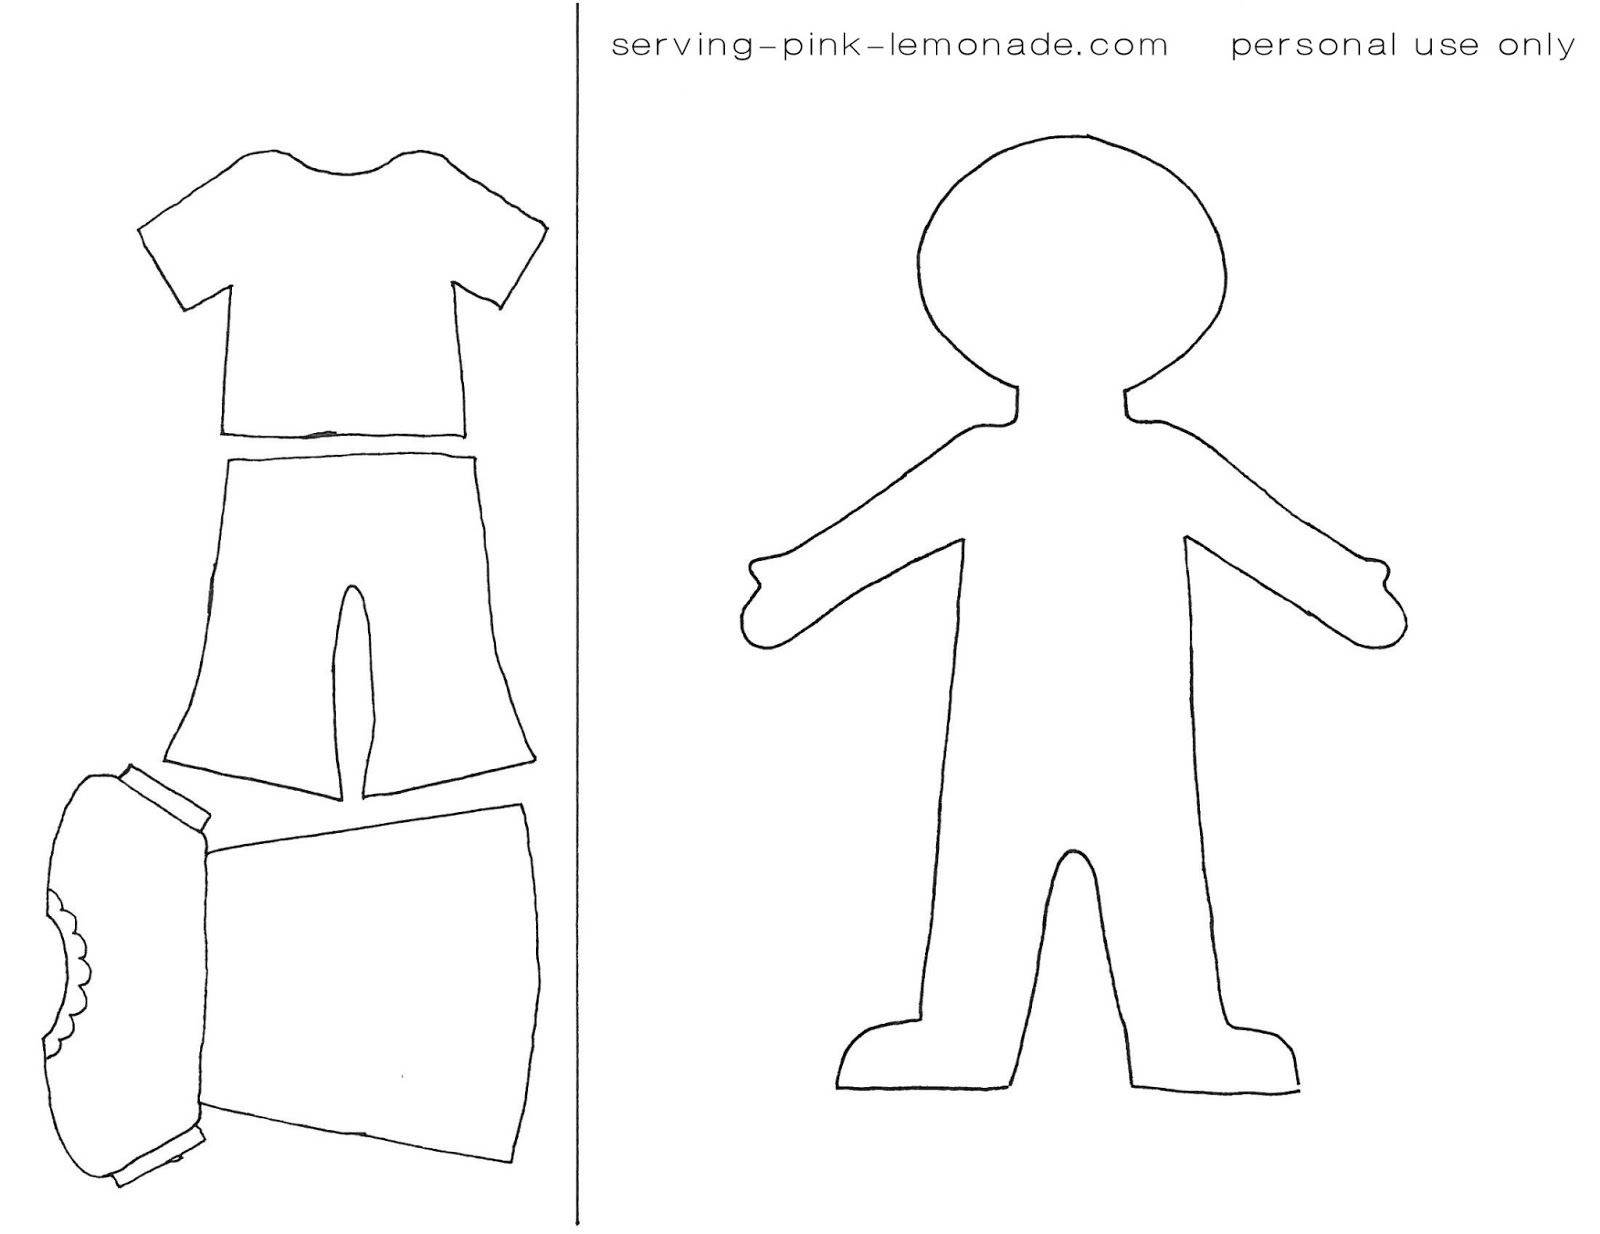 Most Crisp Looking Quiet Book I Ve Ever Seen Instructions And Templates Printable Serving Pink